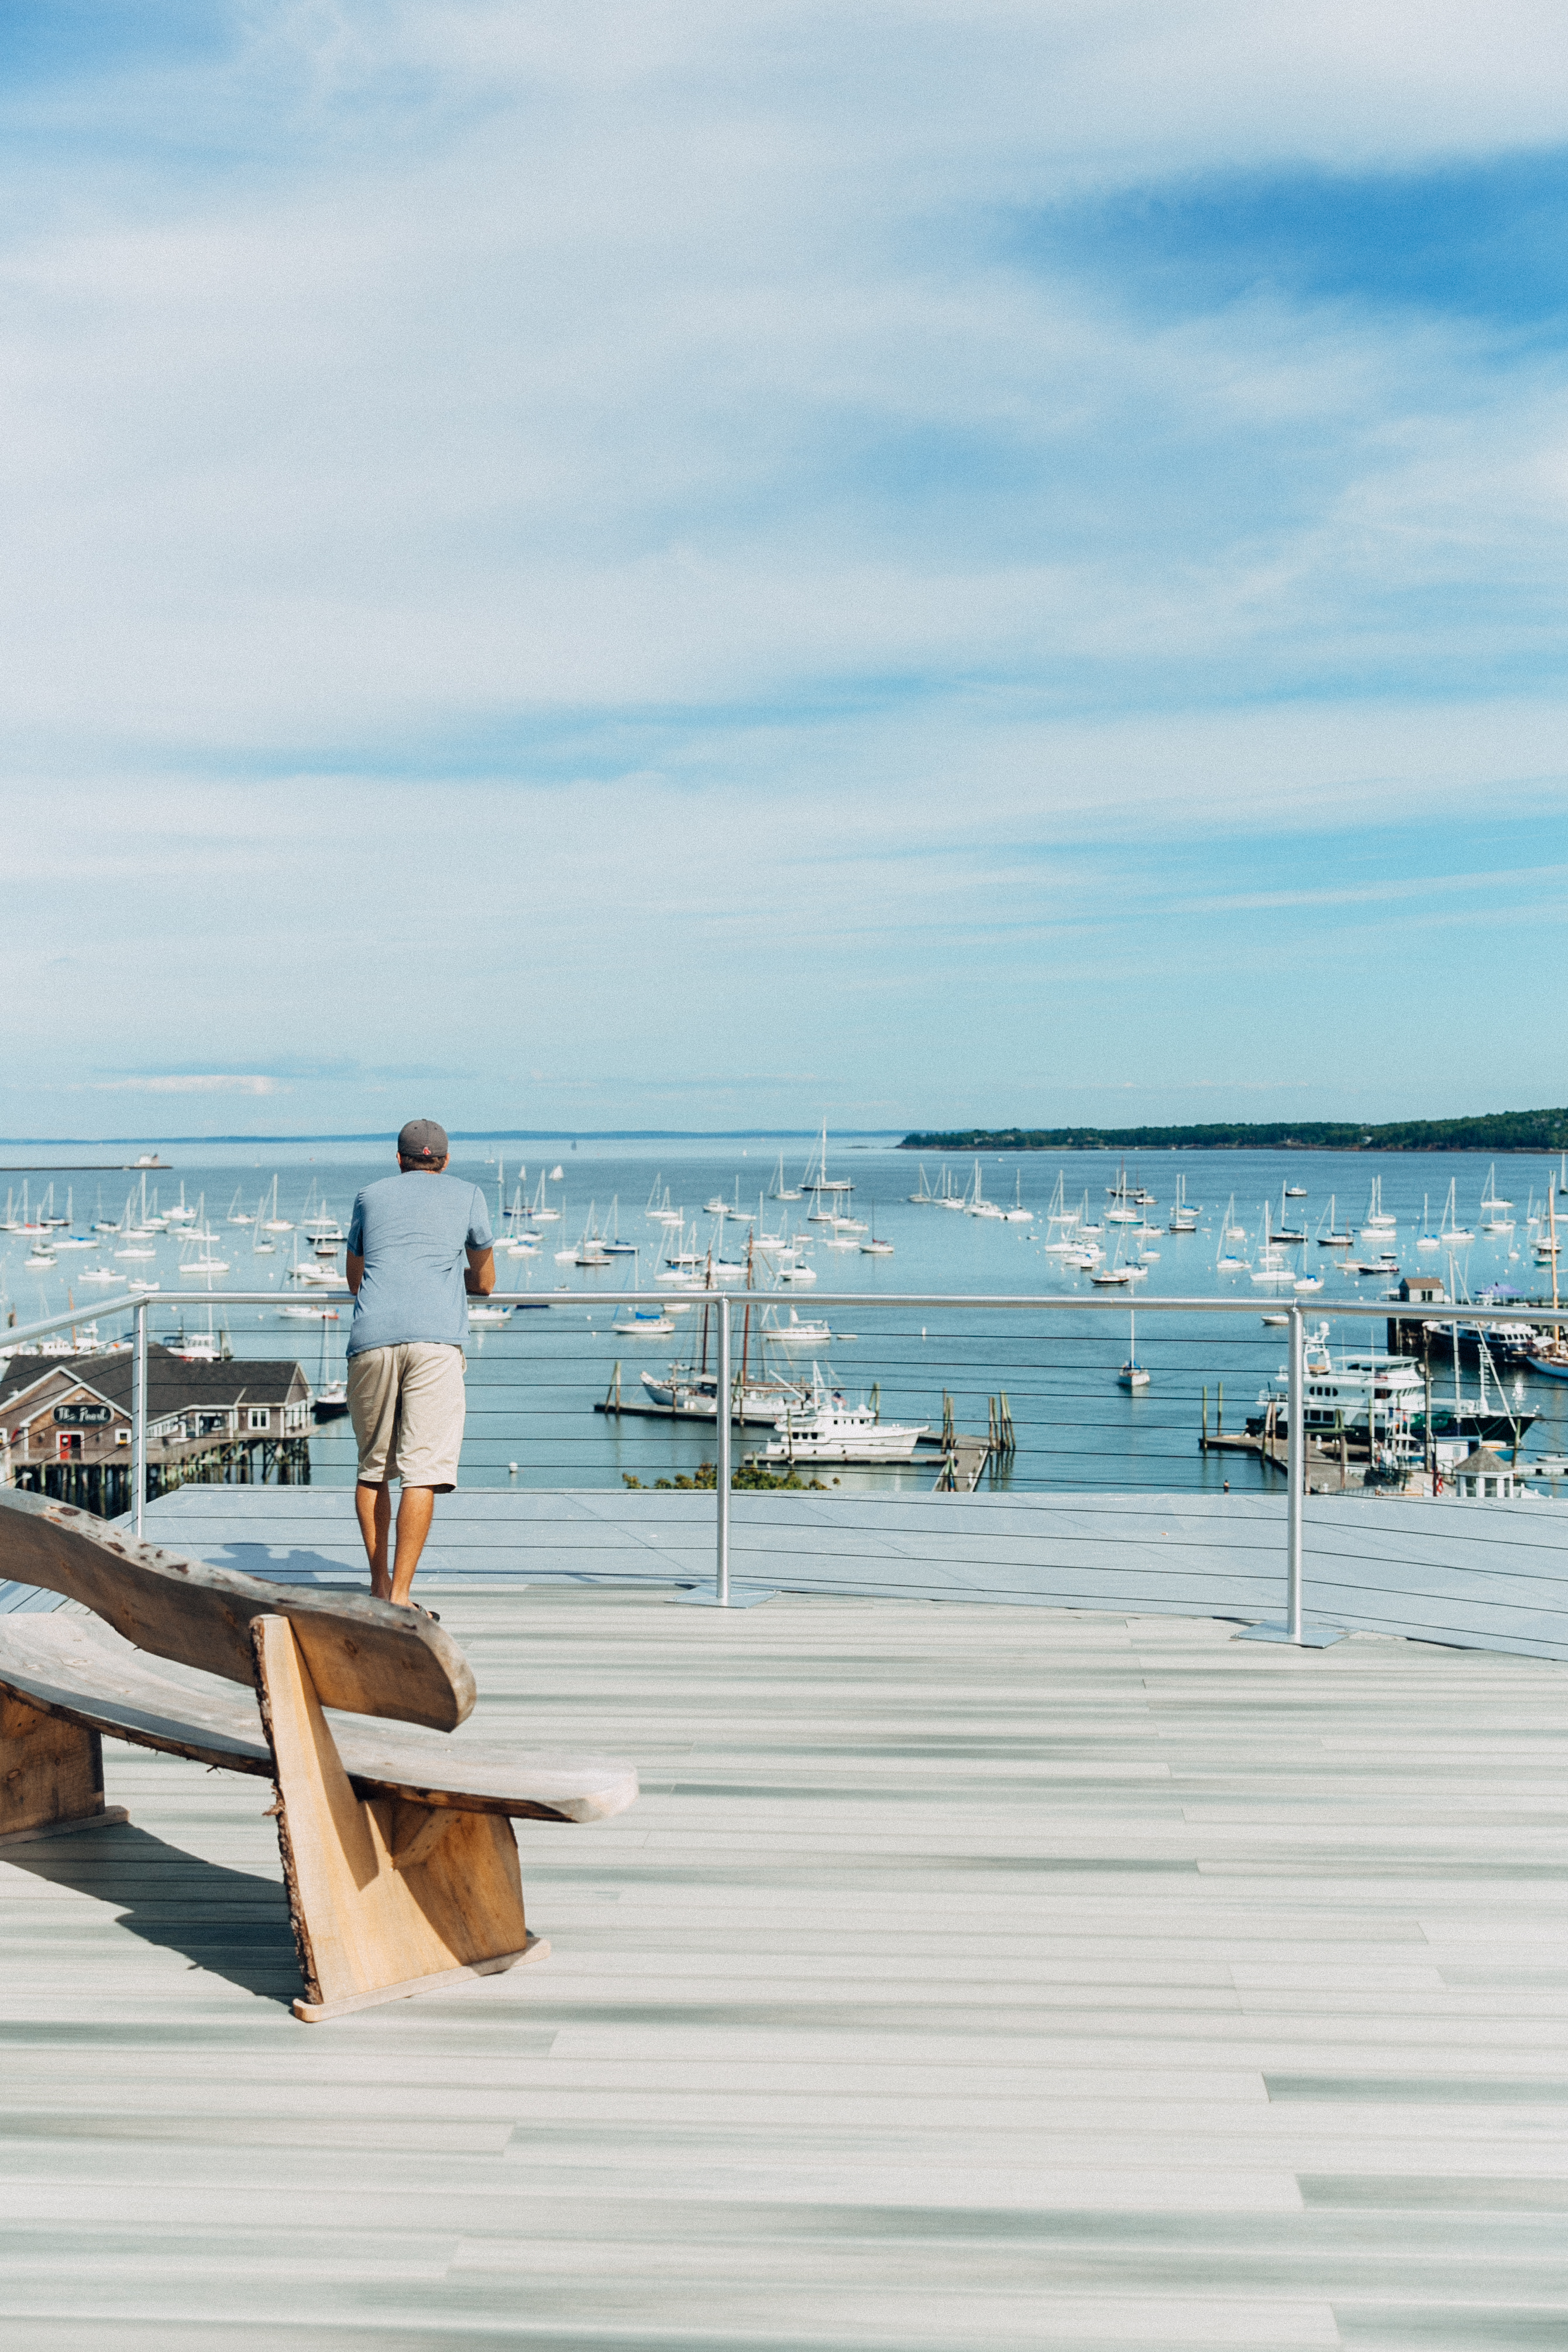 View of Rockland Harbor | Trendy Boutique Hotel in Maine | 250 Main Hotel | Best Places to Stay in Maine | Best Hotels on the Coast of Maine | Where to stay in the coastal towns of Maine | Travel Guide to the coast of Maine | How to Experience Maine | Rockland, Maine | Best of Maine via Travel Blogger @elanaloo + elanaloo.com